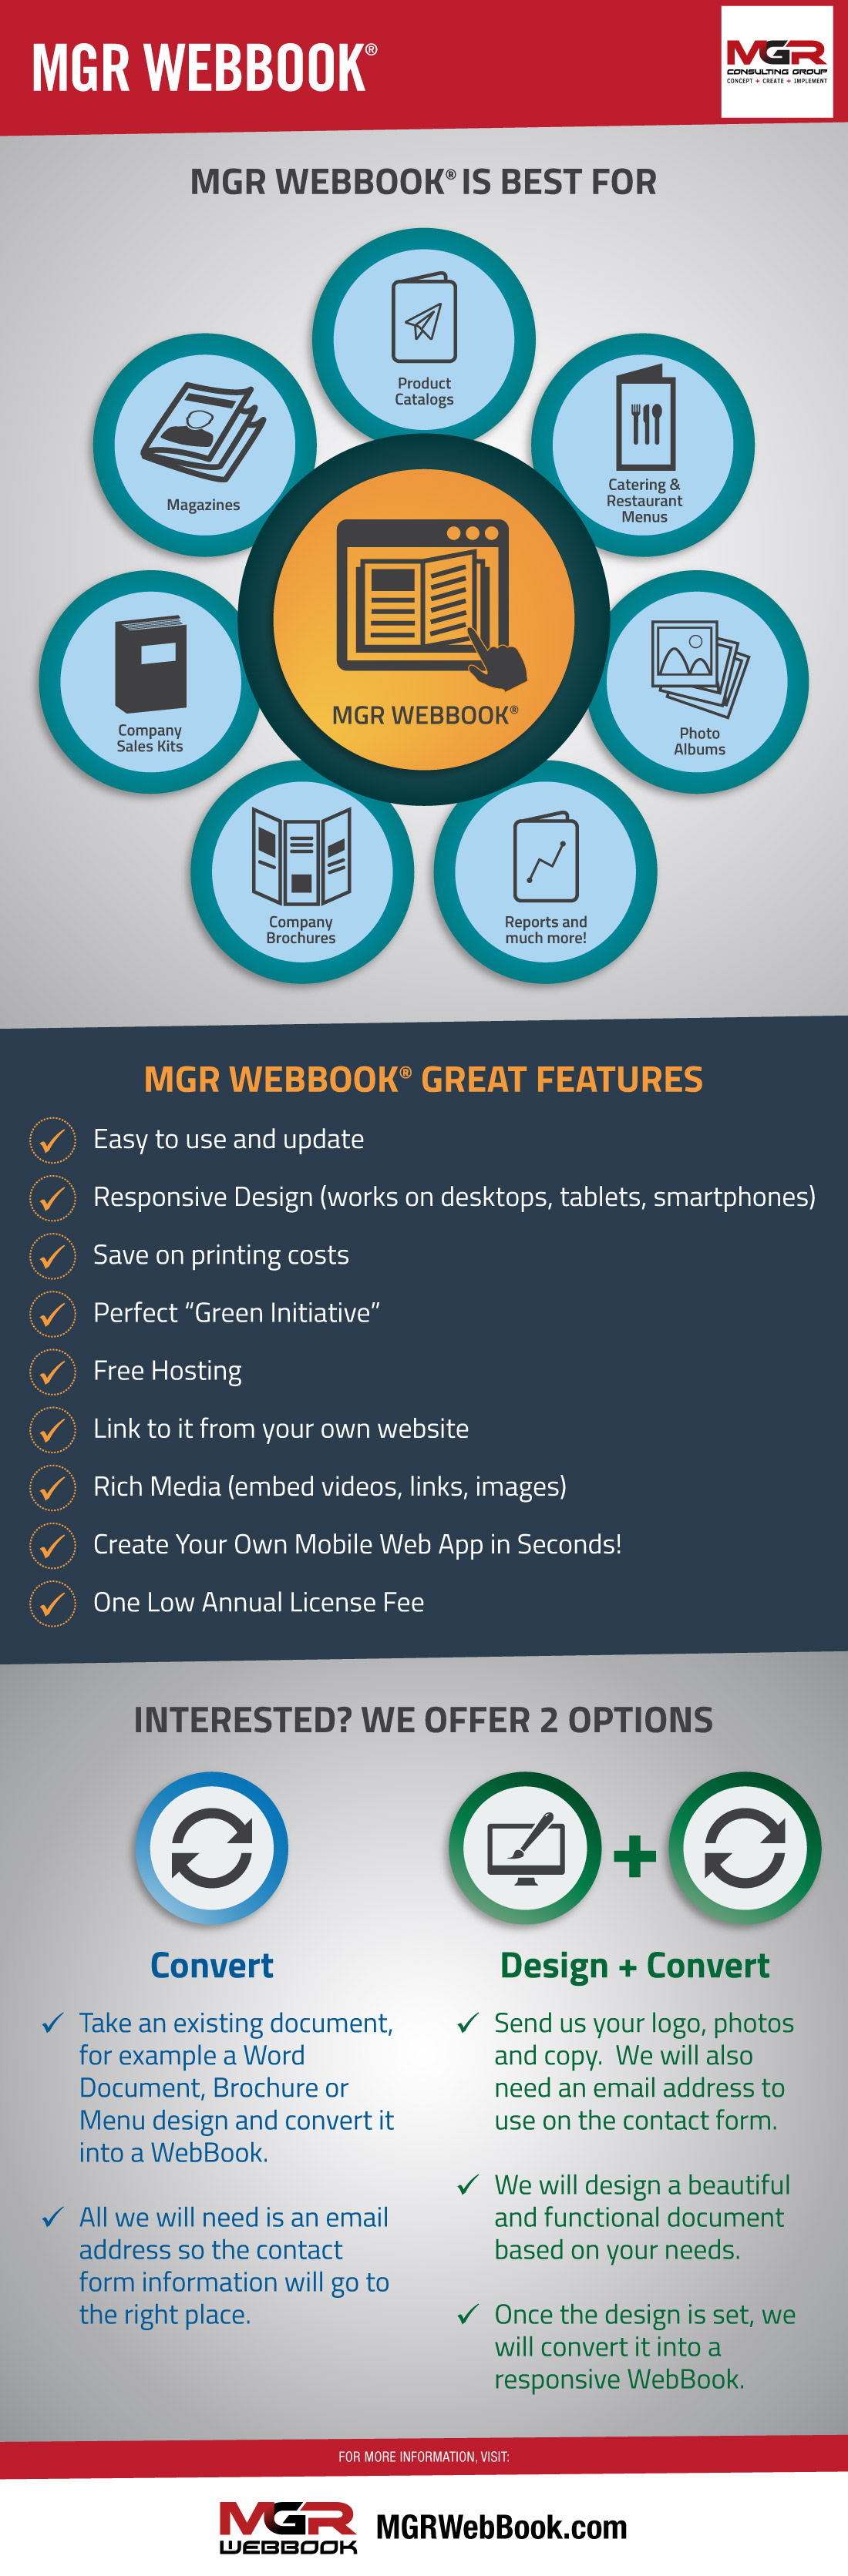 Wondering about our MGR WebBooks? Here's everything you need to know to get yours: